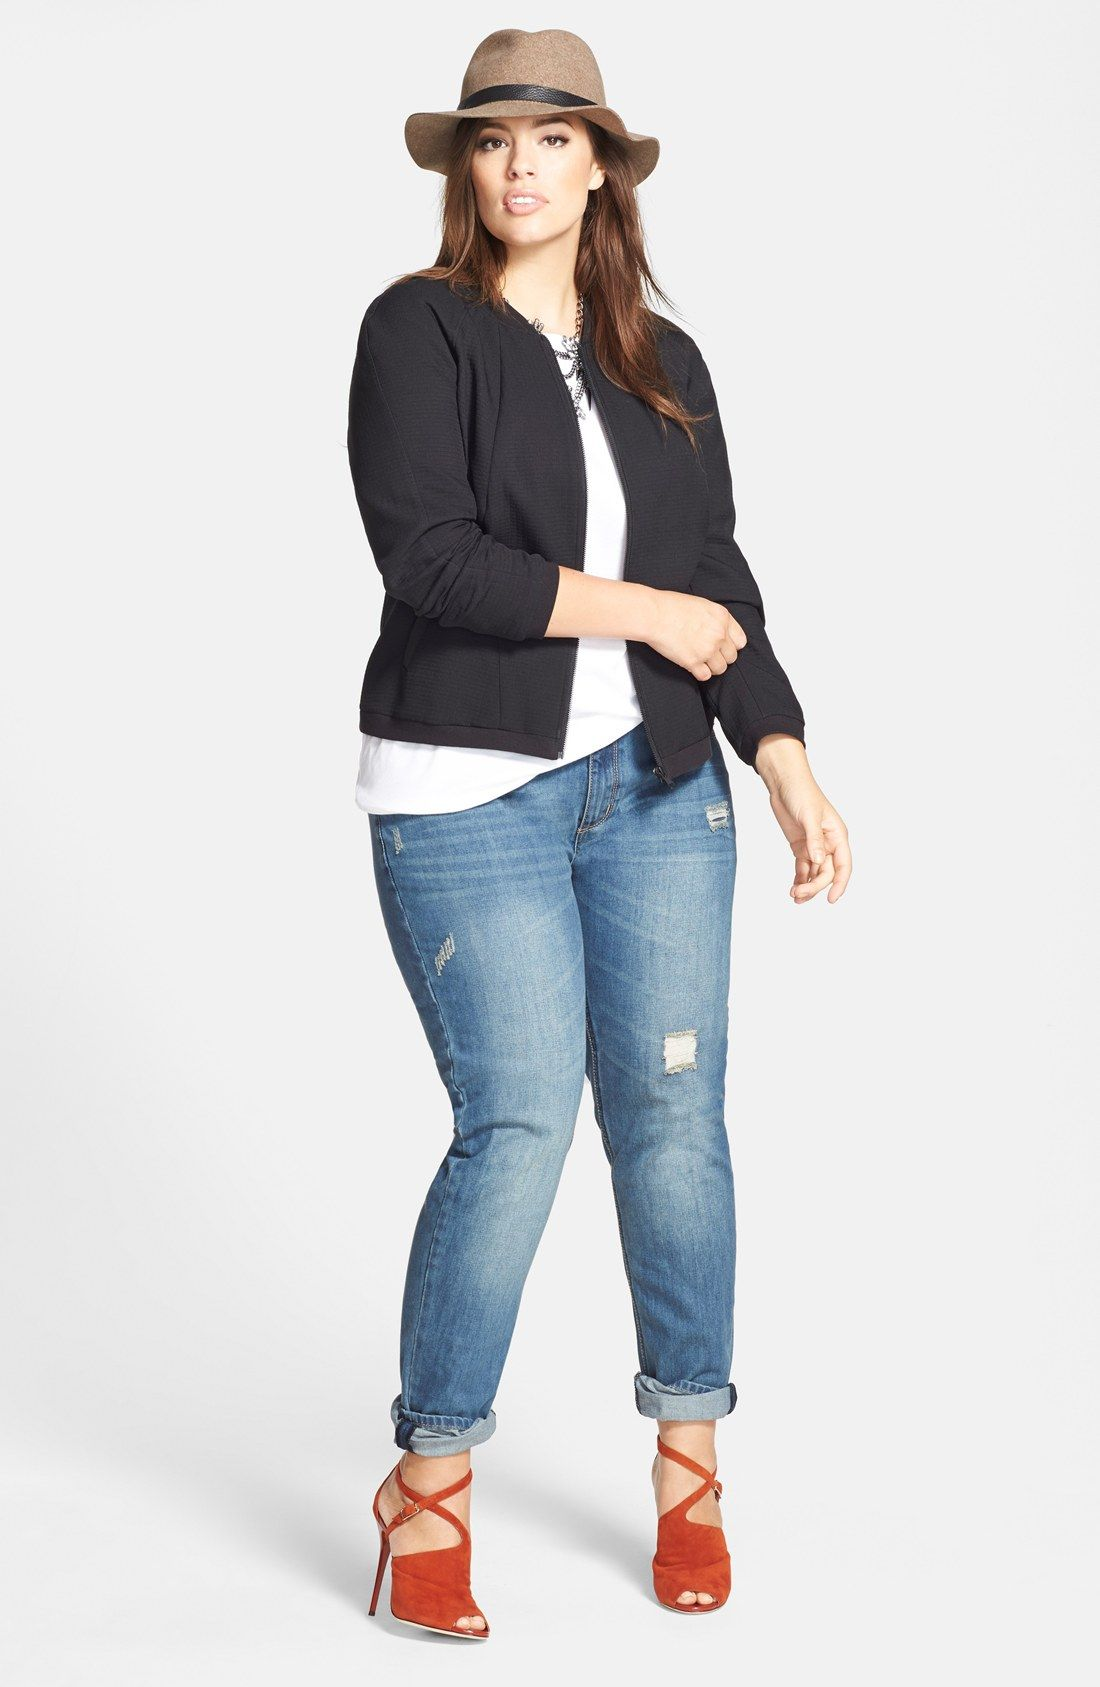 Sejour Bomber Jacket, Tee & City Chic Boyfriend Jeans (Plus Size ...